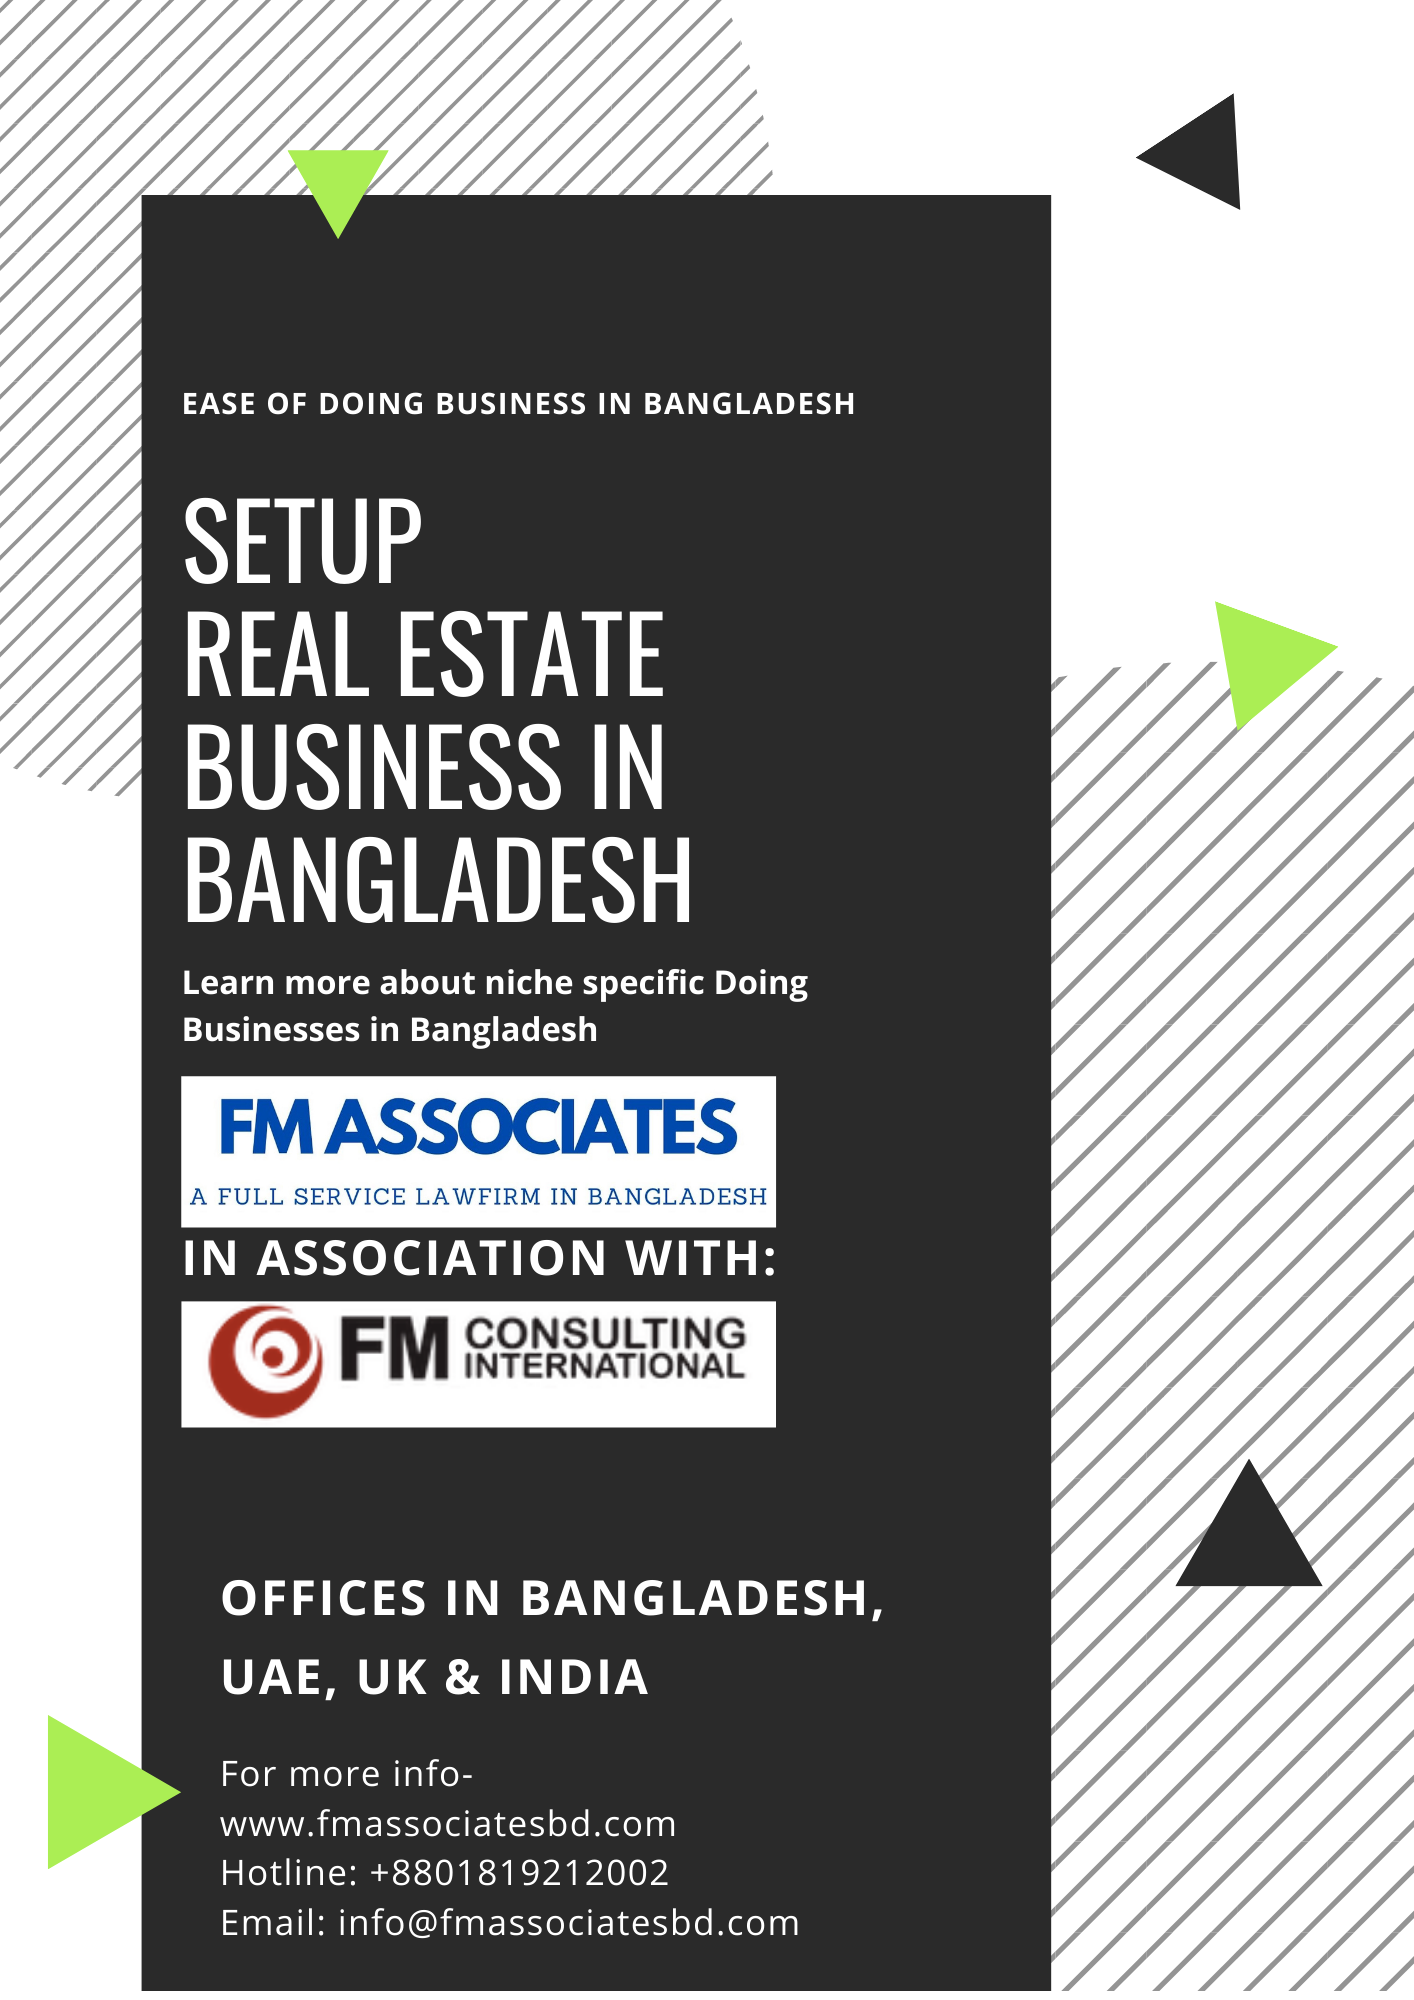 How to Setup Real Estate Business in Bangladesh